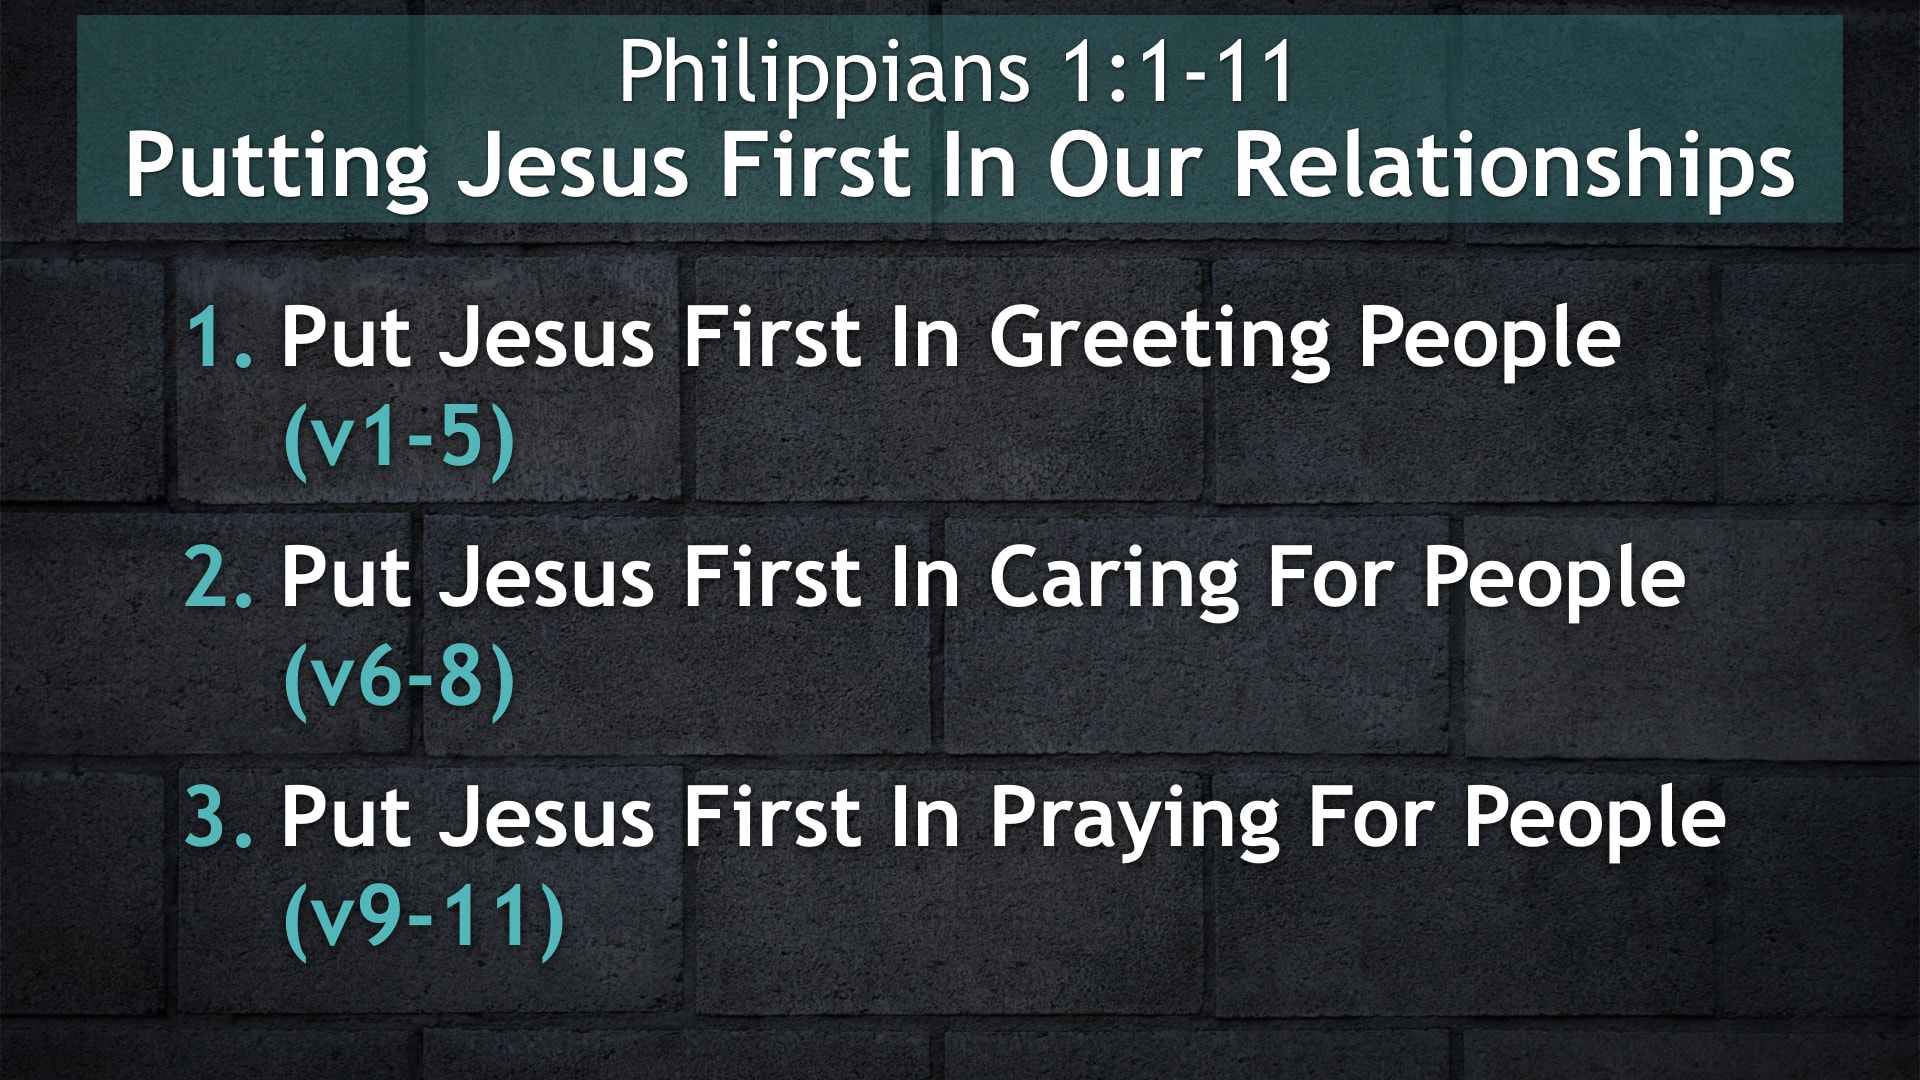 Philippians 1:1-11, Putting Jesus First In Our Relationships